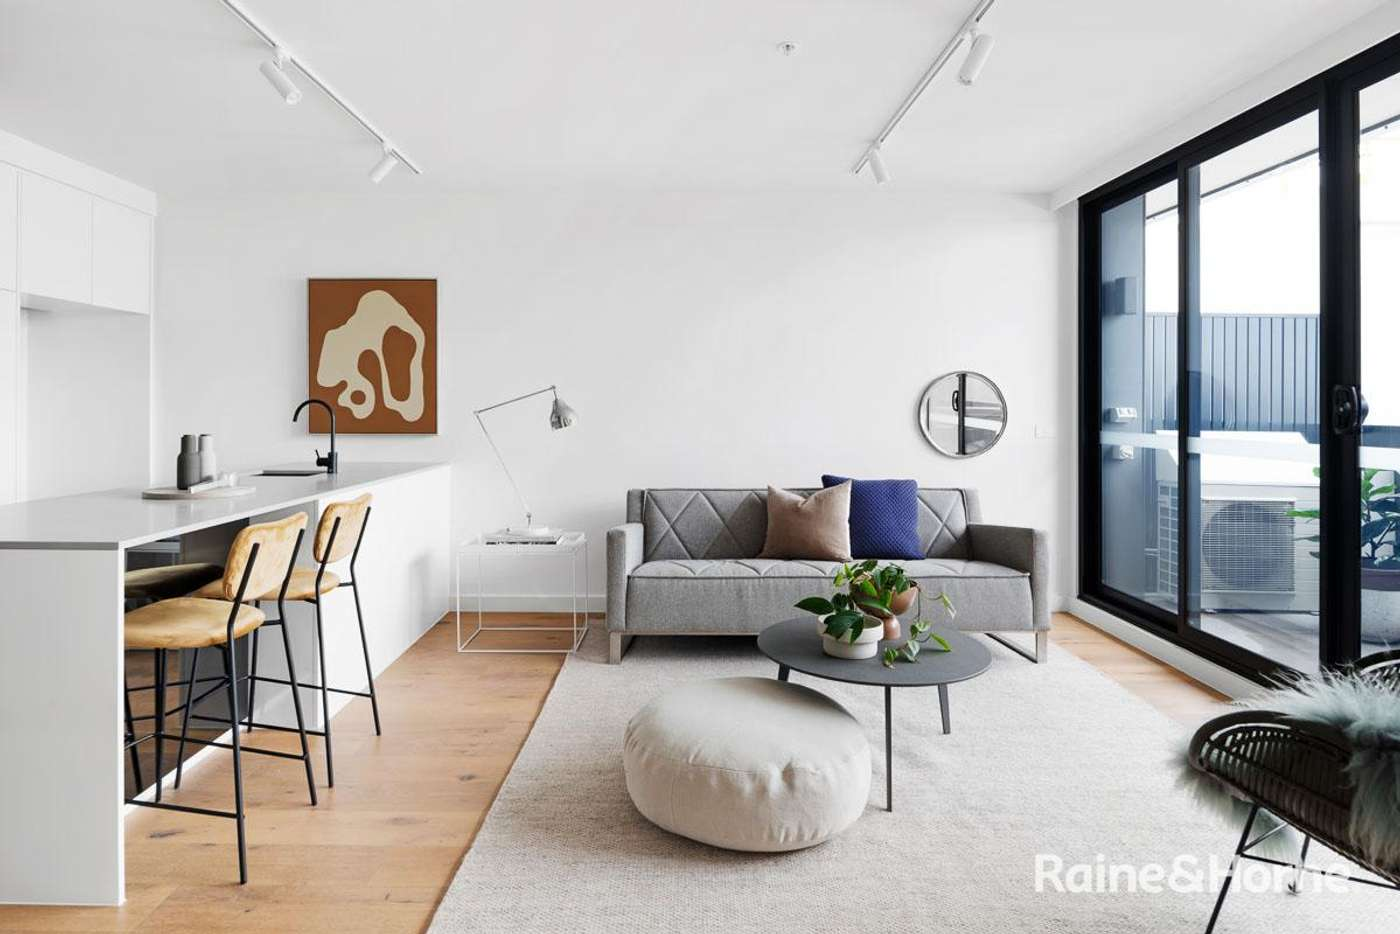 Main view of Homely apartment listing, 2.02/65 Nicholson Street, Brunswick East VIC 3057